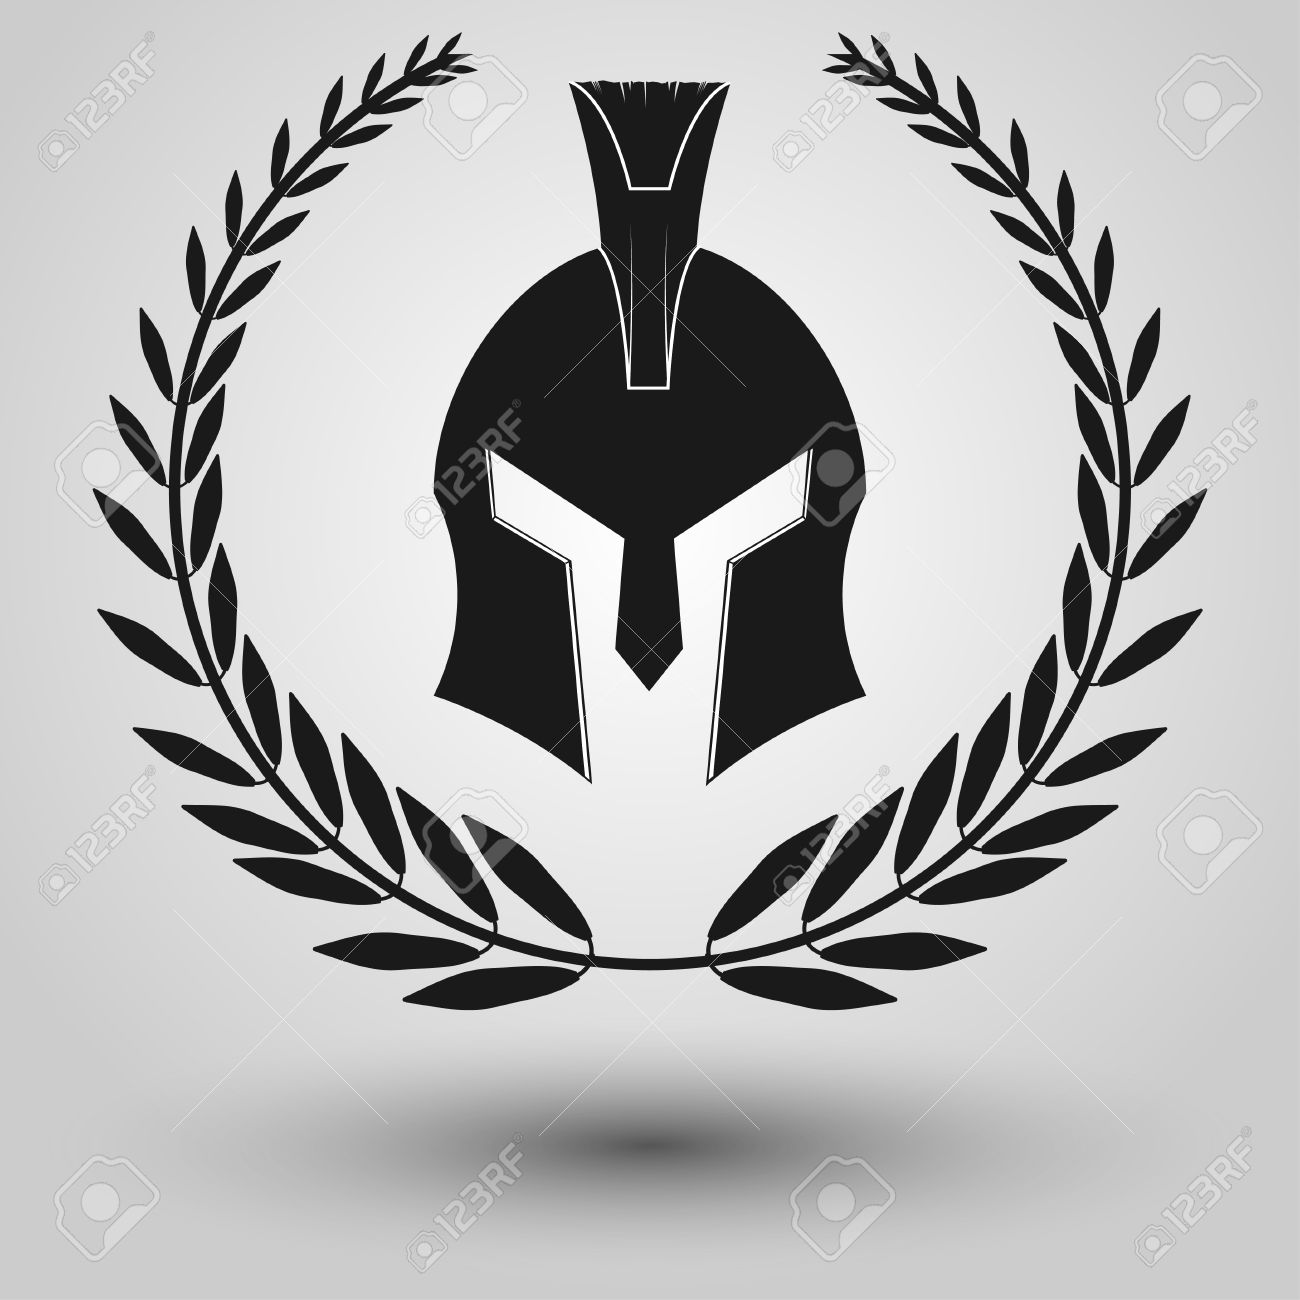 420 greek ancient wreath cliparts stock vector and royalty free spartan helmet full face silhouettes with laurel wreath symbol of gladiator soldier or greek warrior biocorpaavc